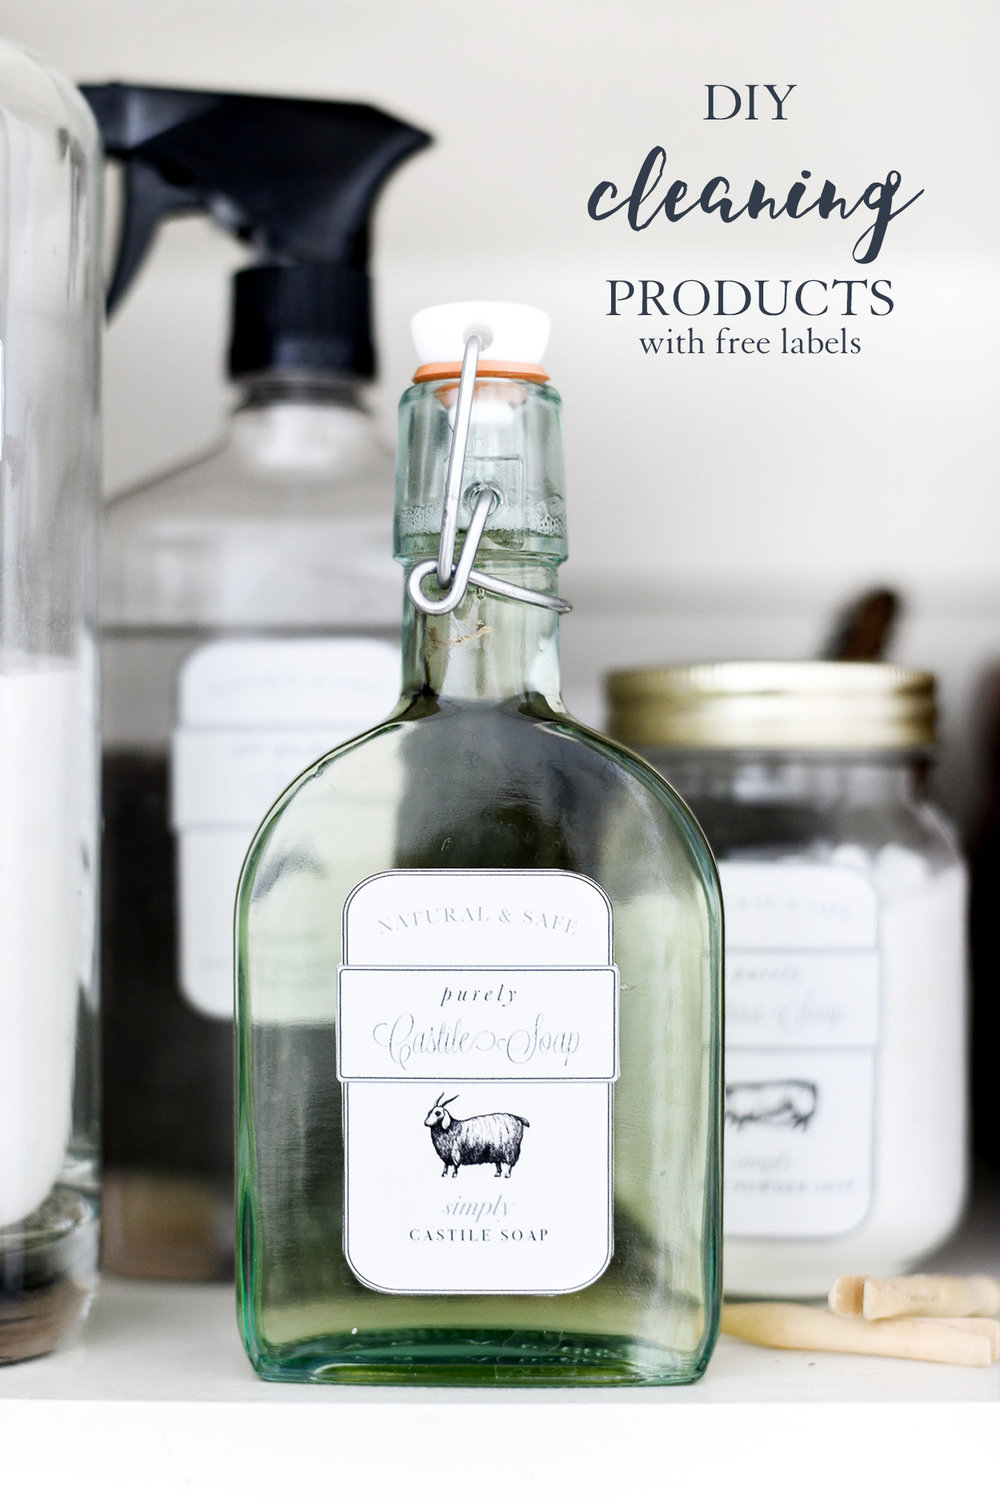 Free labels for DIY cleaning products from boxwoodavenue.com